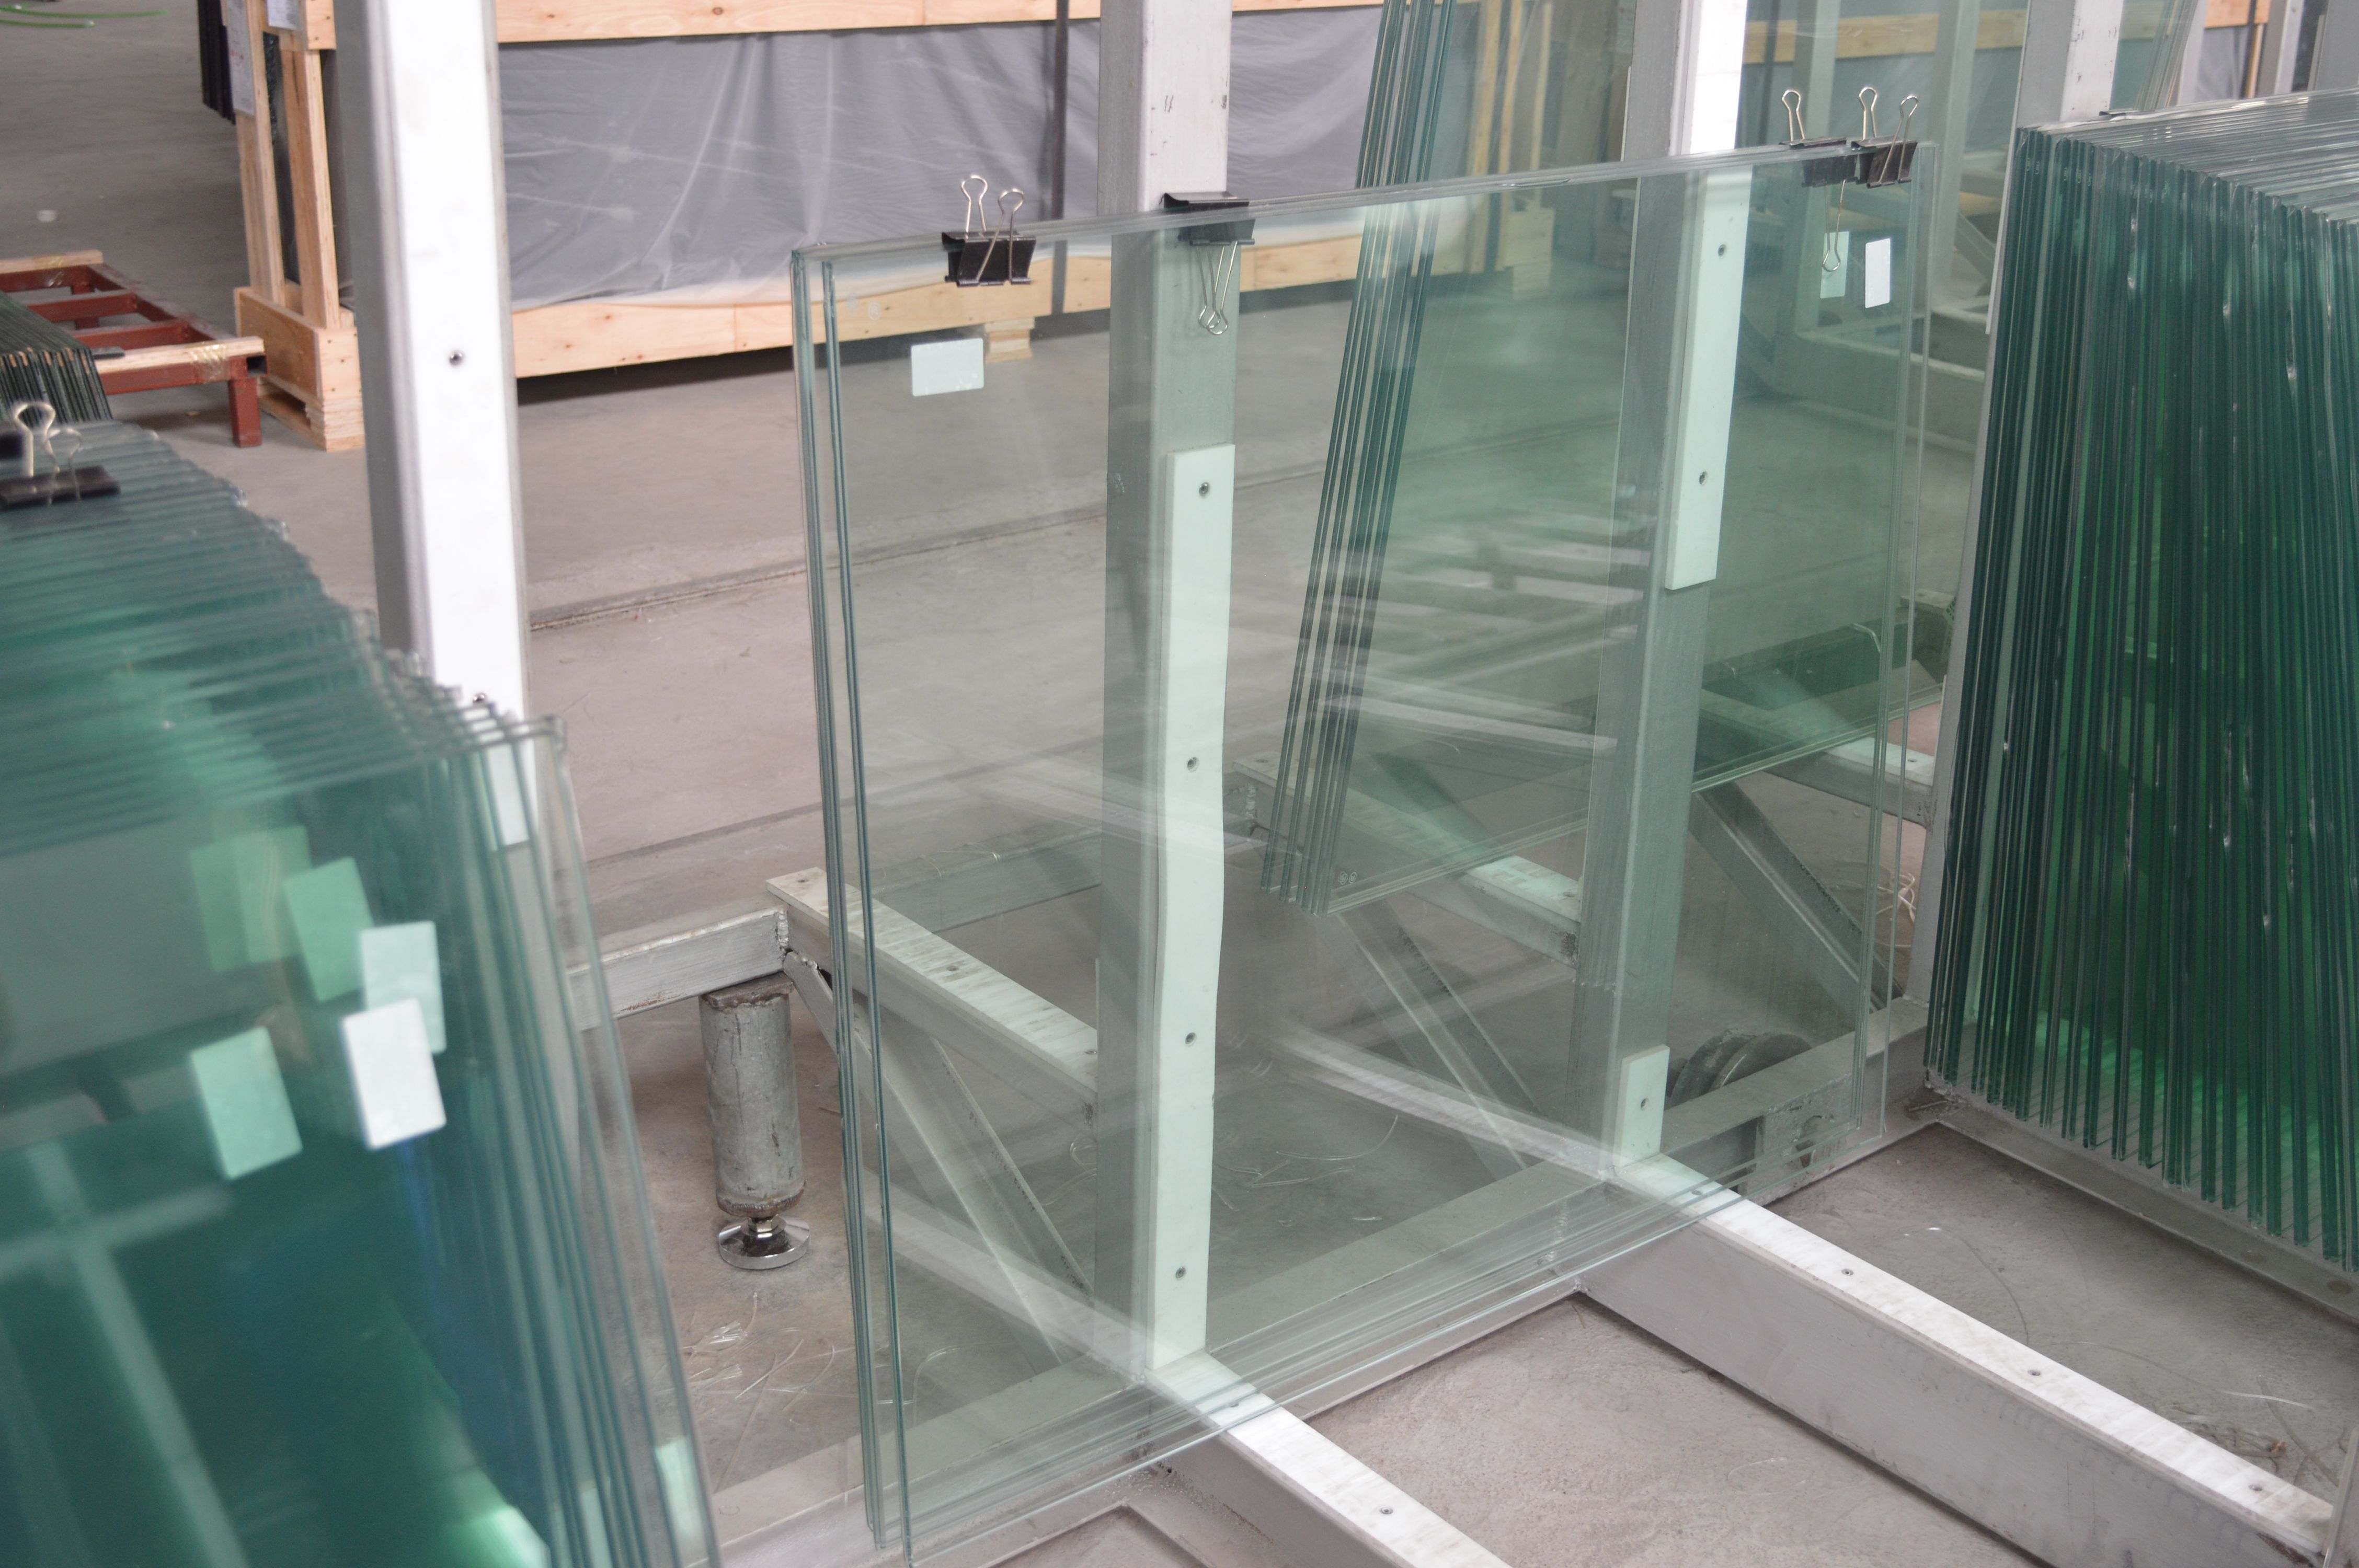 8mm 10mm 12mm Toughened Glass Price Low Toughened Glass Buy Toughened Glass Price Low 10mm 12mm Toughened Glass 8mm Toughened Glass Product On Alibaba Com Tempered Glass Glass Glass Suppliers